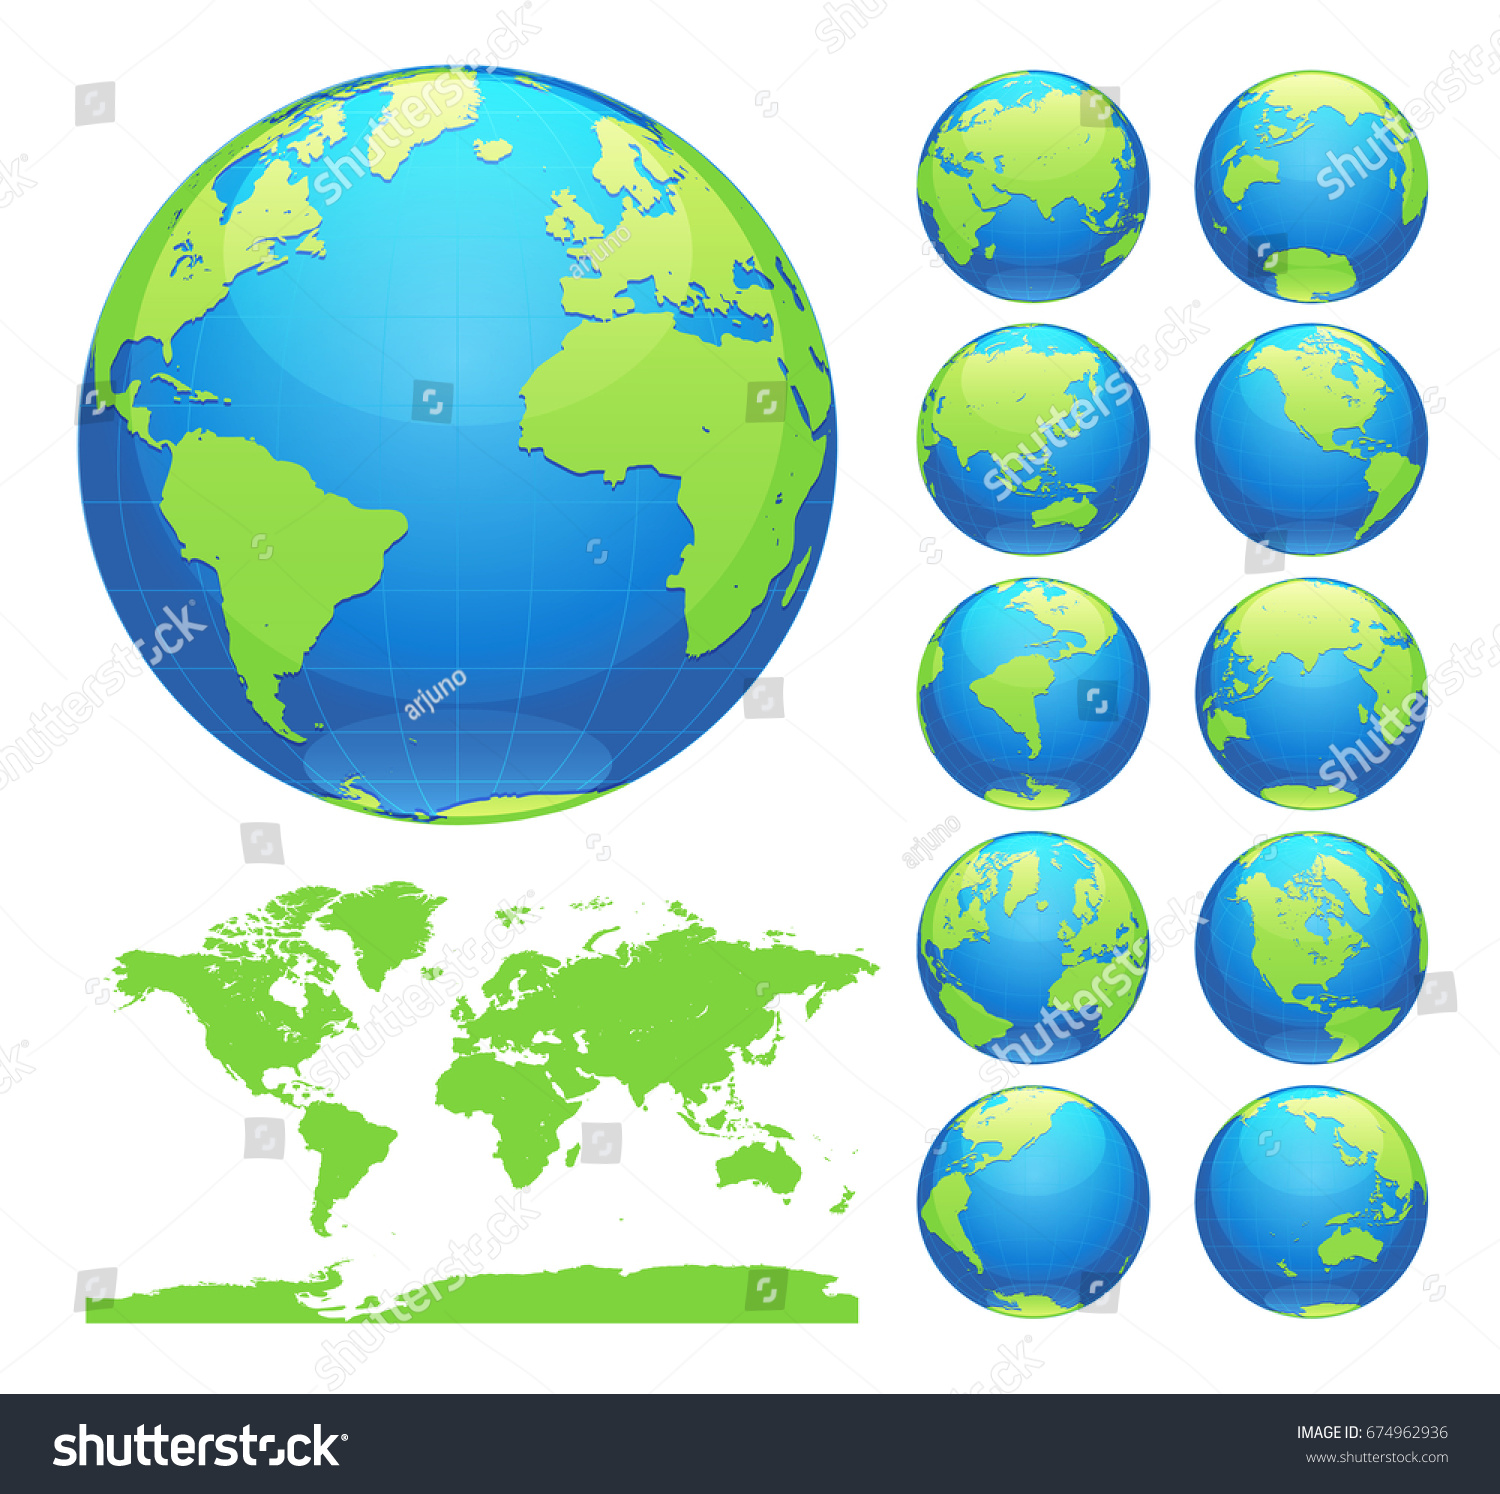 Globes showing earth all continents digital stock vector 674962936 globes showing earth with all continents digital world globe vector dotted world map vector gumiabroncs Gallery